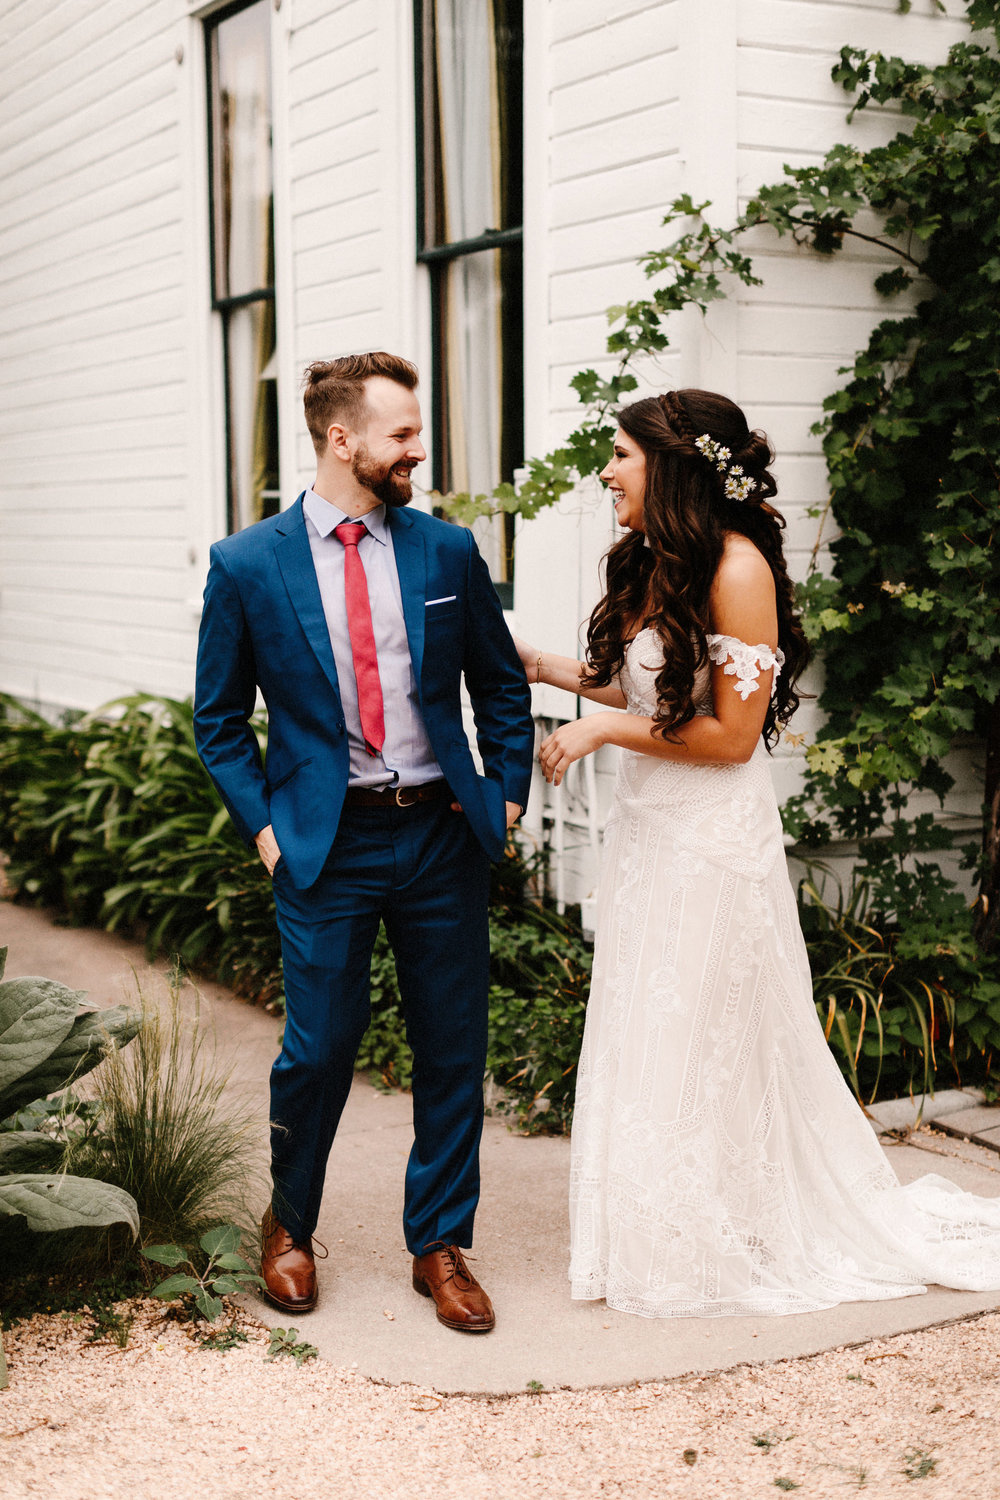 Austin Wedding at Barr Mansion by Gloria Goode Photography